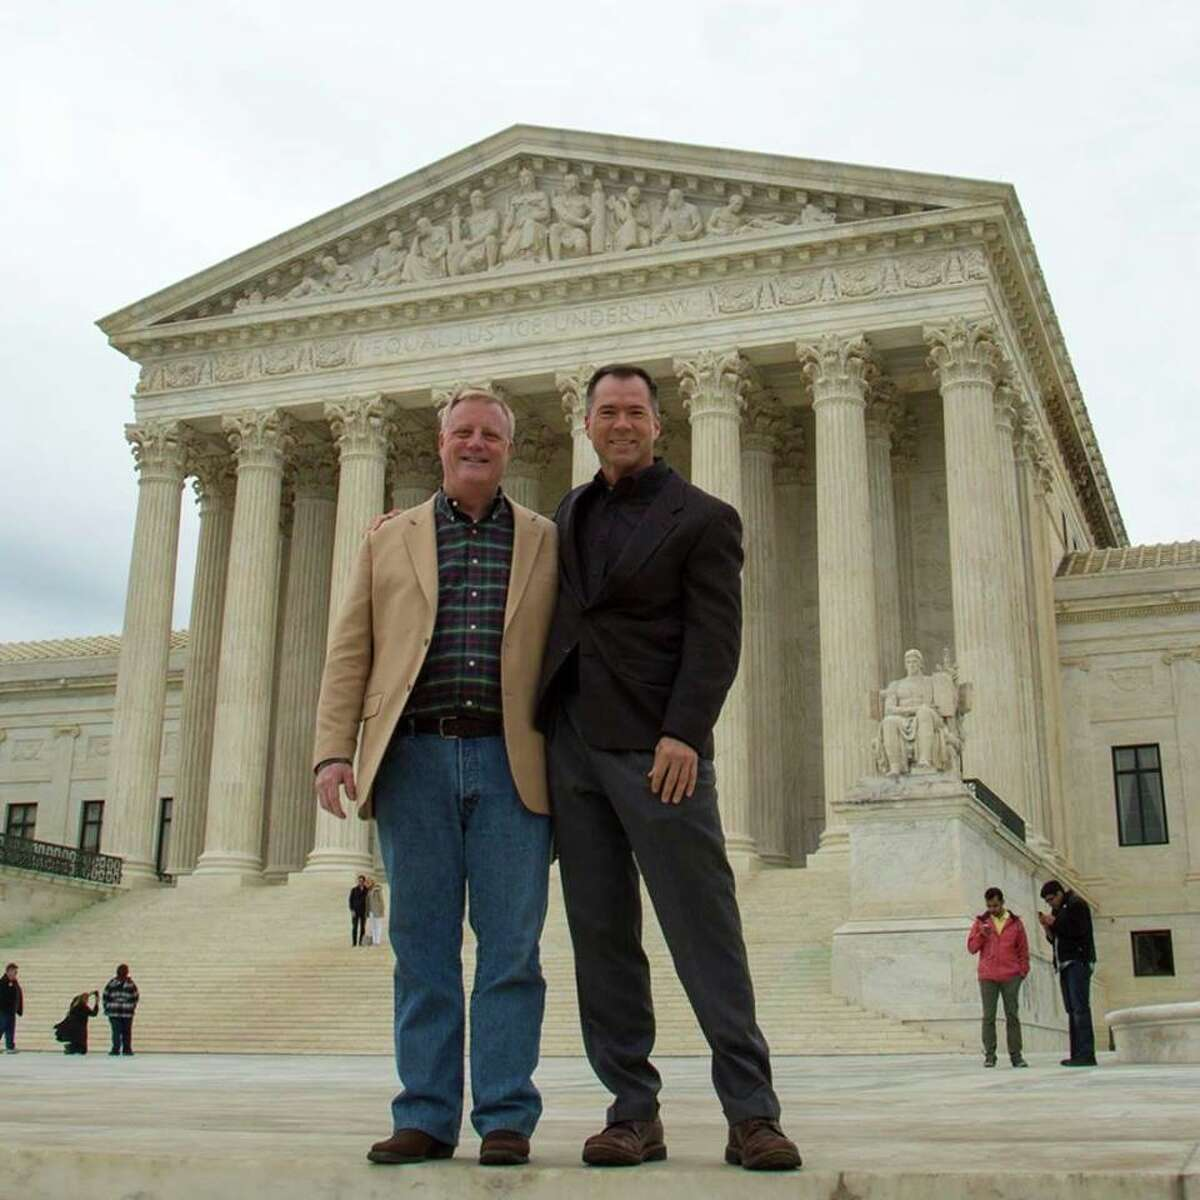 Mark Phariss and Victor Holmes, two of the four plaintiffs in the case challenging Texas' gay marriage ban, stand in front of the U.S. Supreme Court just days before the justices take up the issue of same-sex marriage.